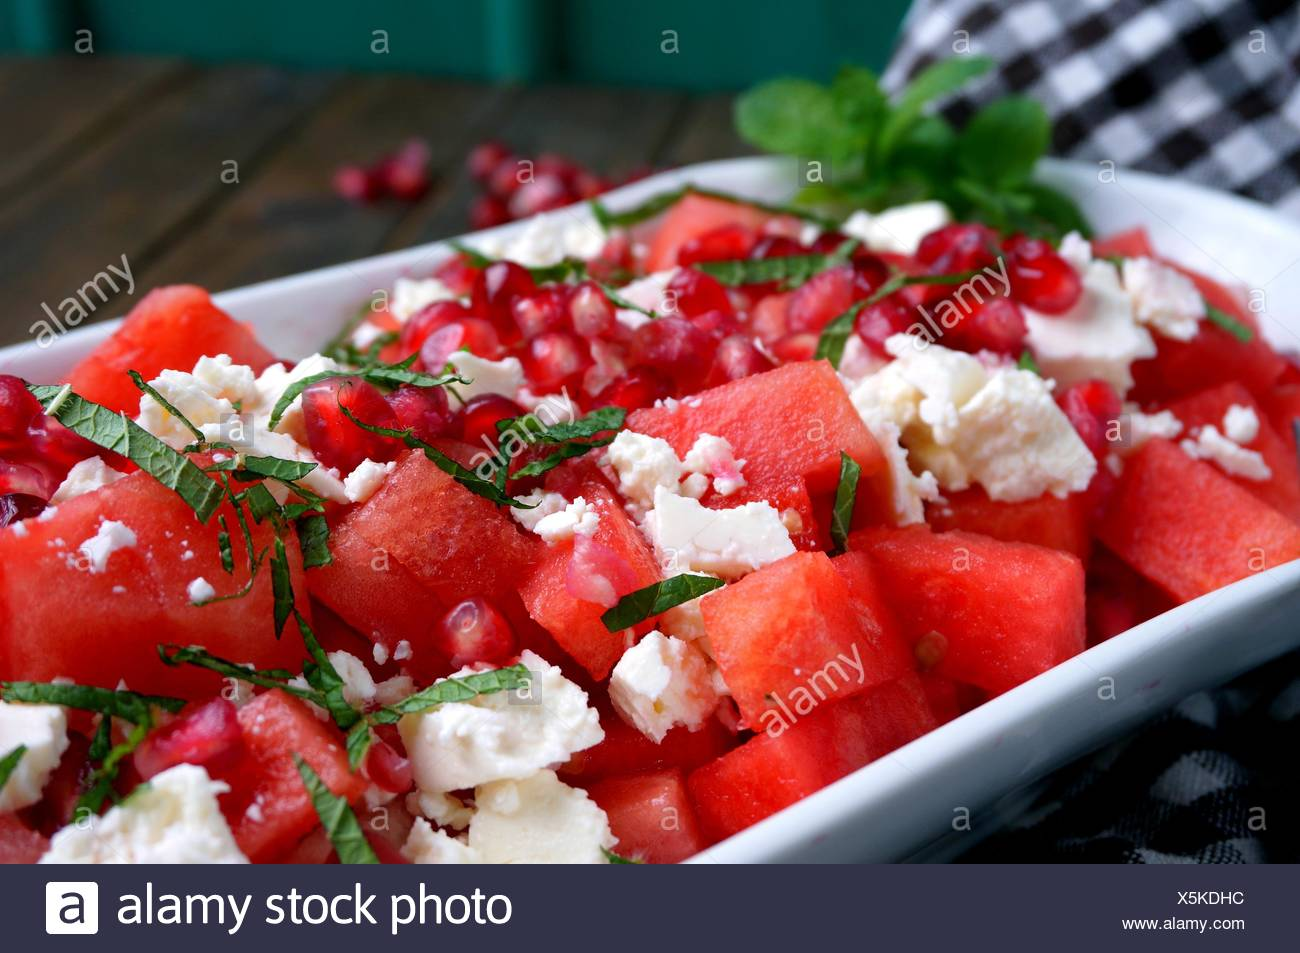 Watermelon salad with feta cheese and pomegranate seeds - Stock Image